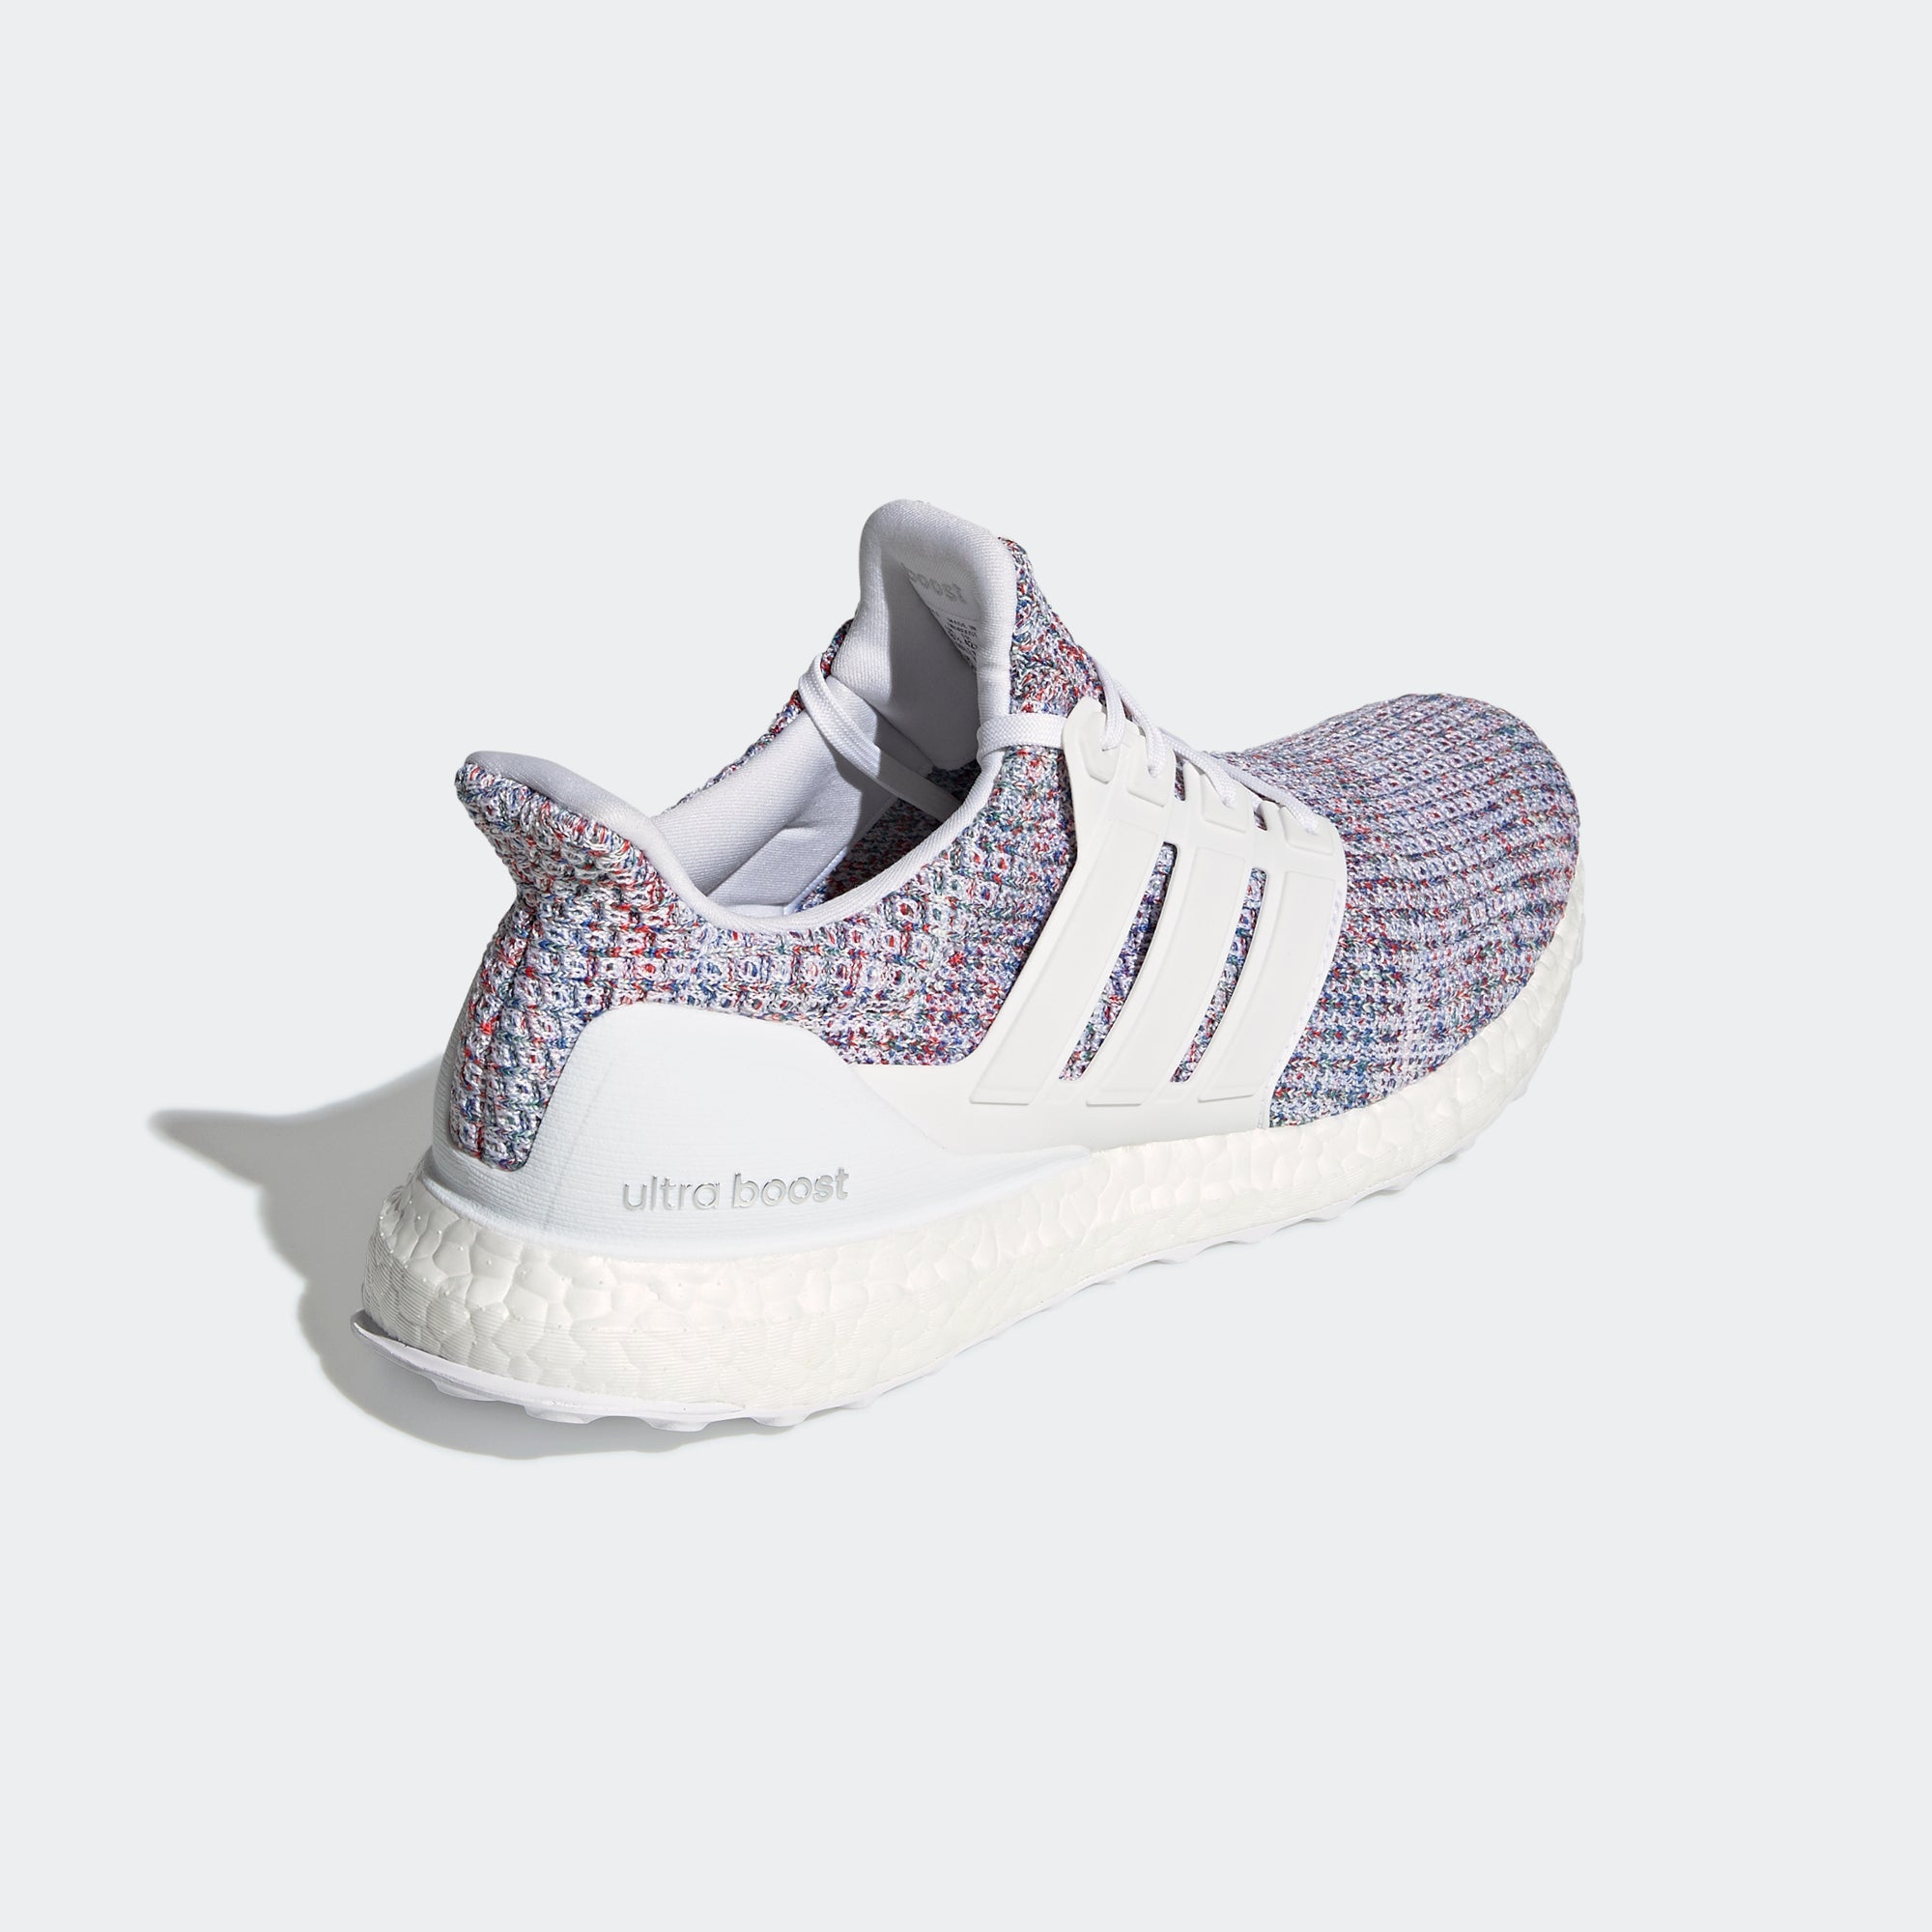 21e4d2d51 Men s adidas Originals Ultraboost Shoes Cloud White Blue. 1